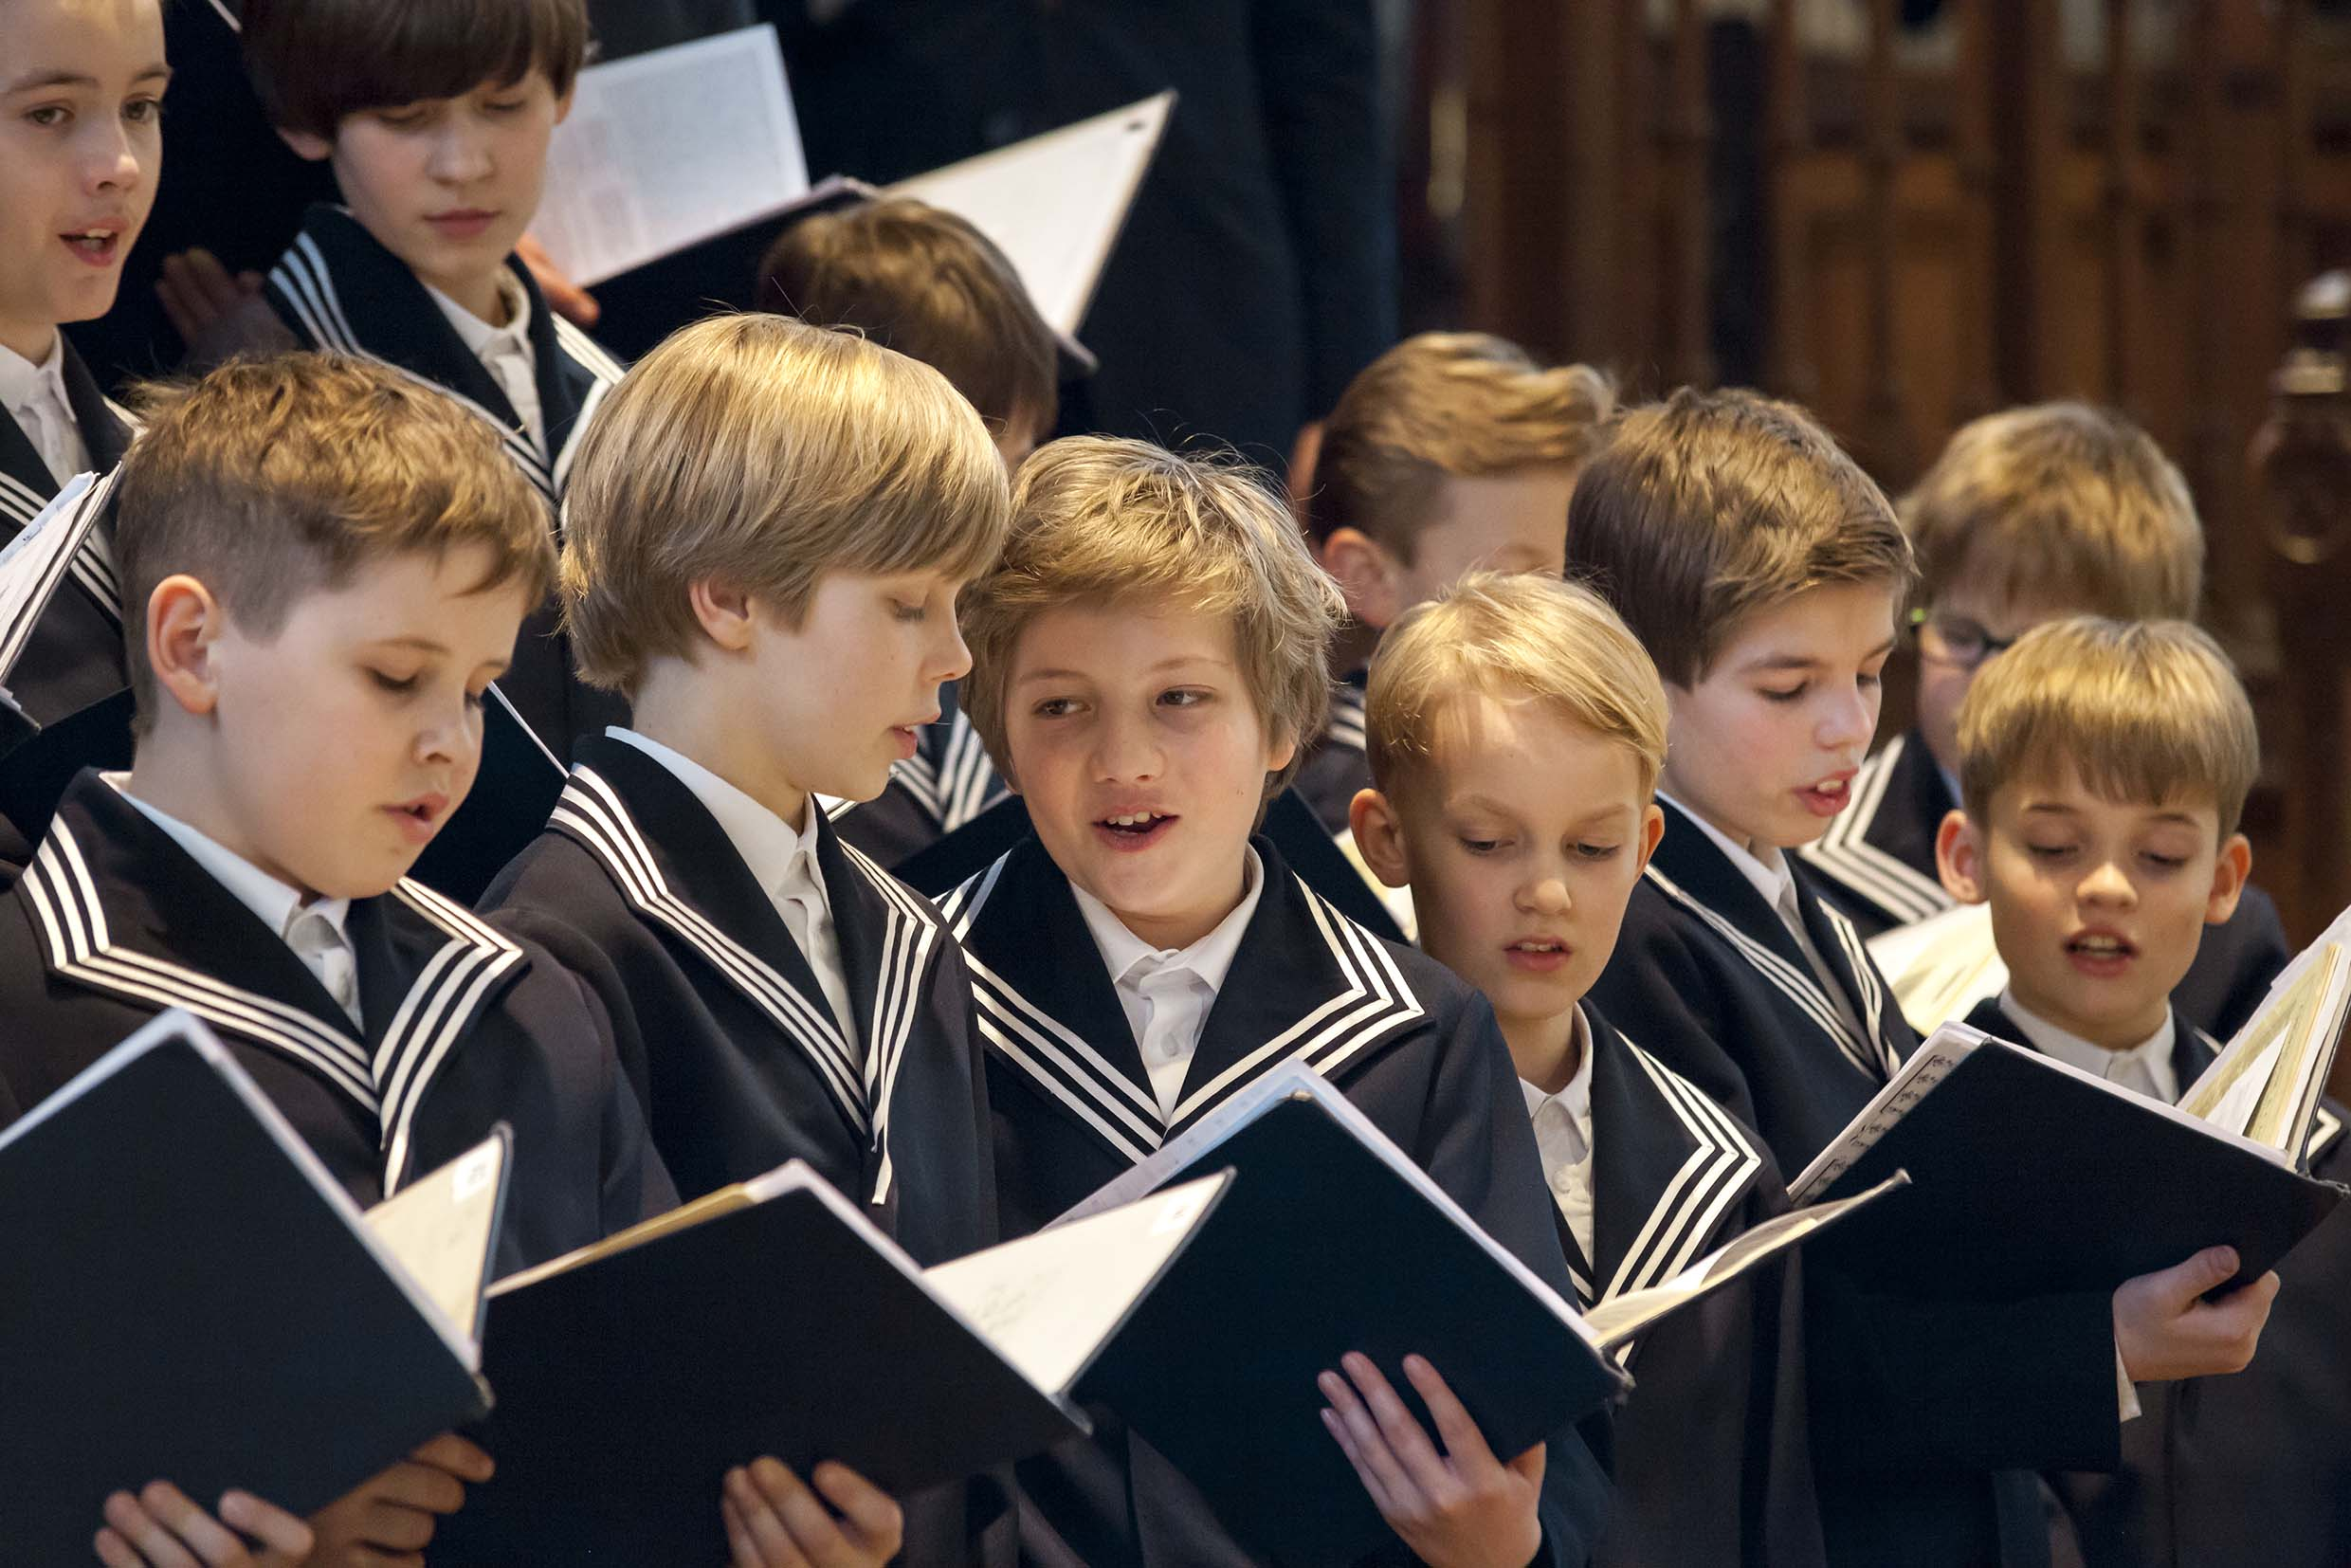 Young members of the Thomanerchor performing. The Thomanerchor was founded in 1212, and the Thomaskantor is its director, as was Bach from 1723 until his death in 1750.